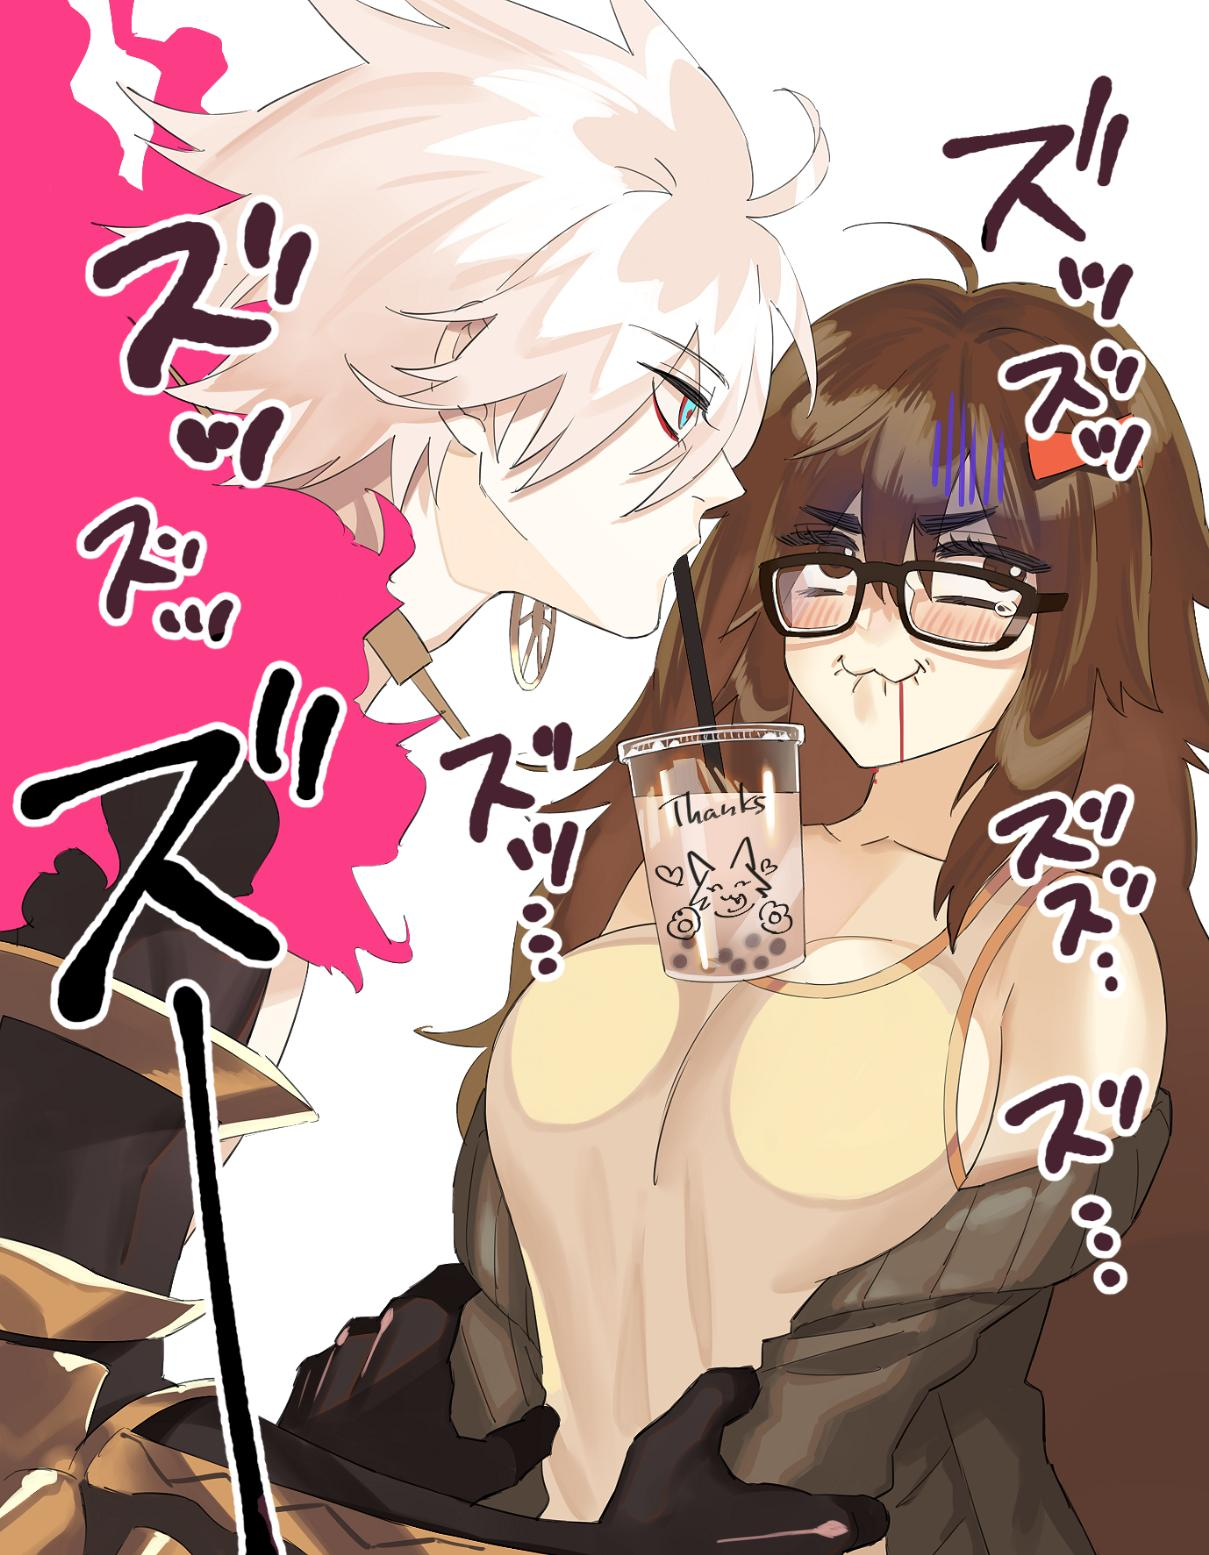 1boy 1girl biting black-framed_eyewear blue_eyes blush bow breasts brown_eyes brown_hair bubble_tea bubble_tea_challenge cape cardigan clothes_down commentary drinking_straw english_text eyebrows_visible_through_hair fate/grand_order fate_(series) fur_collar glasses hair_bow highres holding_another's_arm jinako_carigiri karna_(fate) large_breasts lip_biting long_hair looking_away messy_hair tank_top tears translated warabi_tama white_background white_hair writing